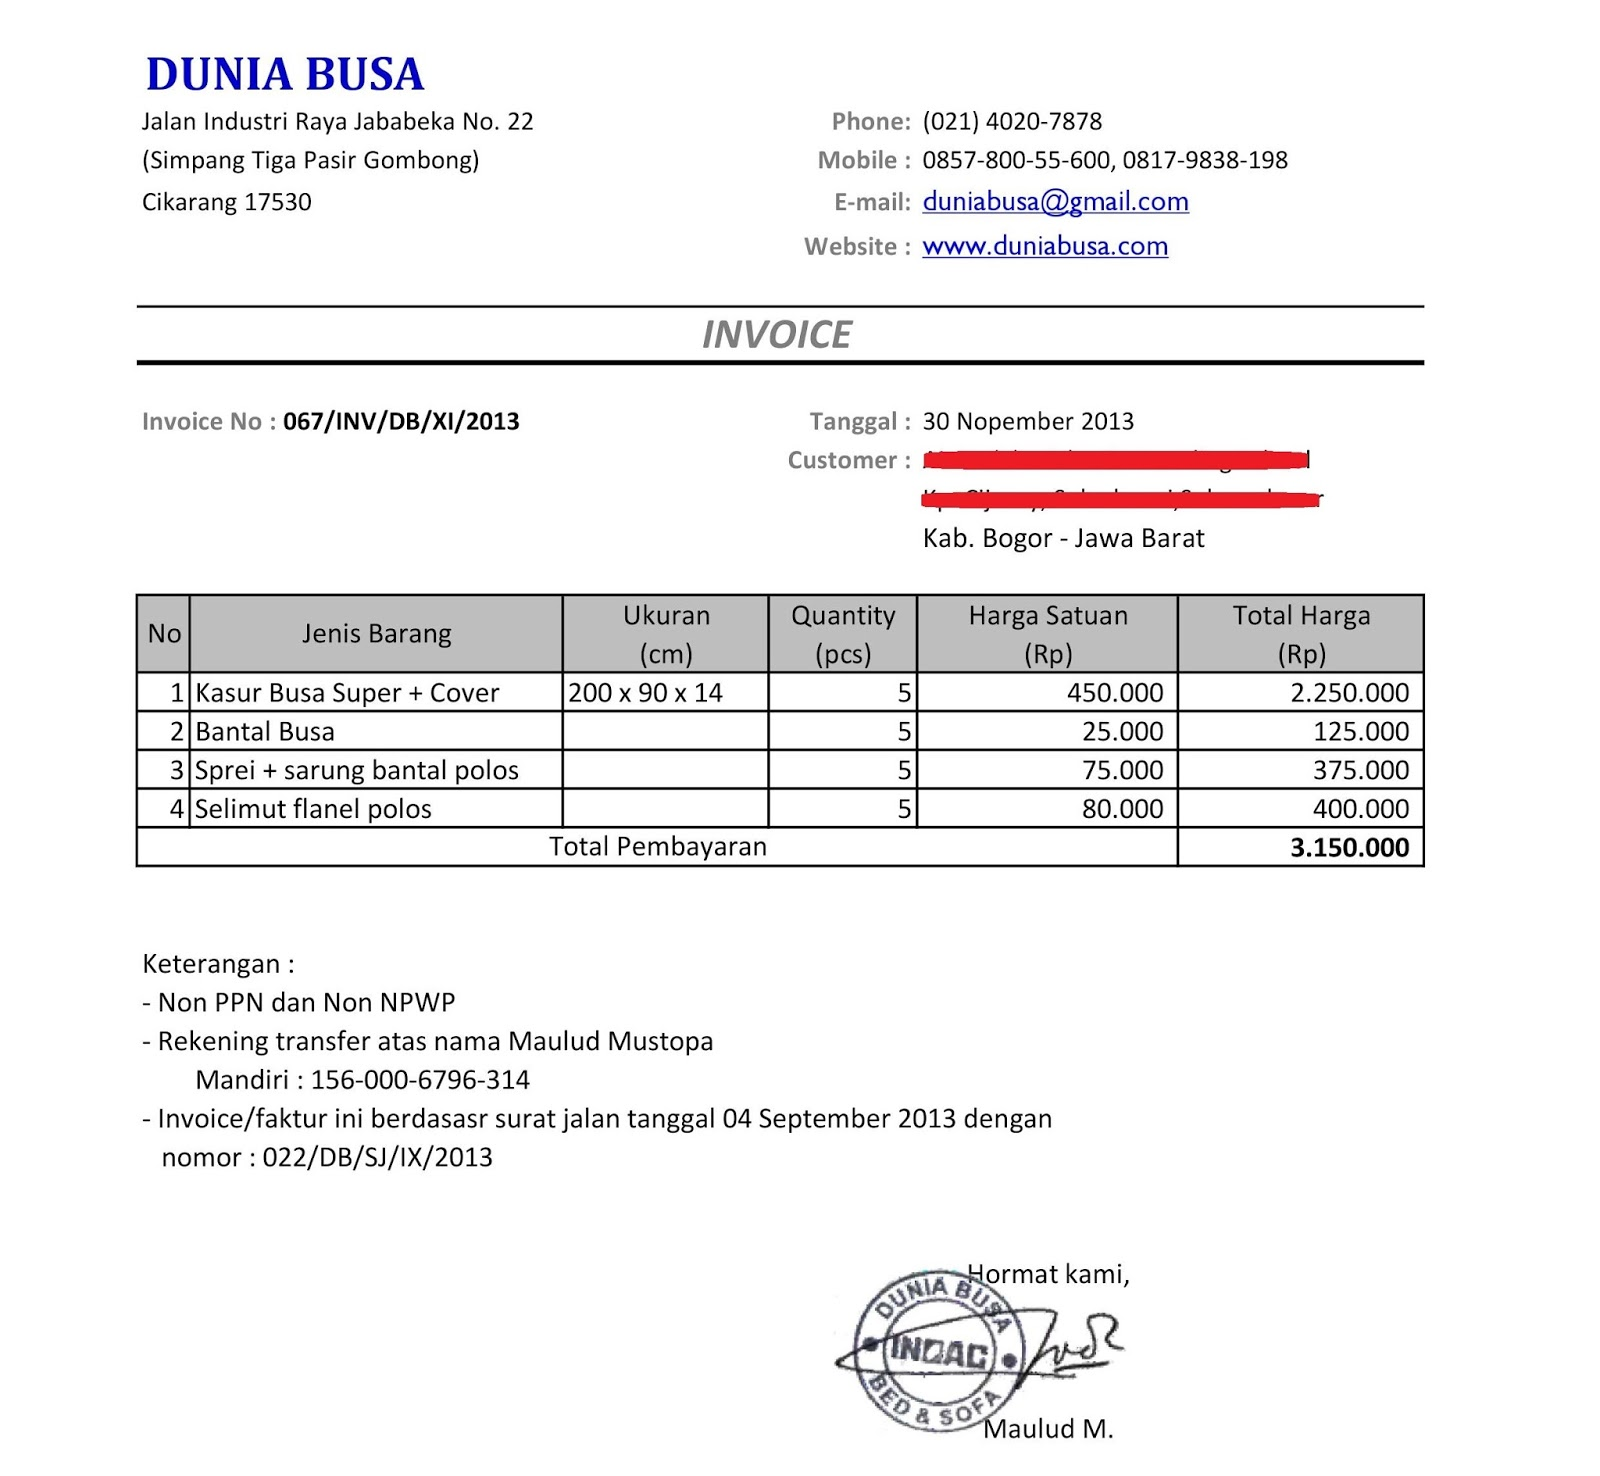 Aldiablosus  Unique Free Invoice Online  Create Invoice Online  Invoice Template  With Inspiring Contoh Format Invoice Atau Surat Tagihan  Brankas Arsip  Free Invoice Online With Charming Ato Tax Invoice Template Also Proforma Invoice Download In Addition Performance Invoice Sample And Free Business Invoice Templates Word As Well As Sales Invoice Meaning Additionally Free Invoices Software From Sklepco With Aldiablosus  Inspiring Free Invoice Online  Create Invoice Online  Invoice Template  With Charming Contoh Format Invoice Atau Surat Tagihan  Brankas Arsip  Free Invoice Online And Unique Ato Tax Invoice Template Also Proforma Invoice Download In Addition Performance Invoice Sample From Sklepco